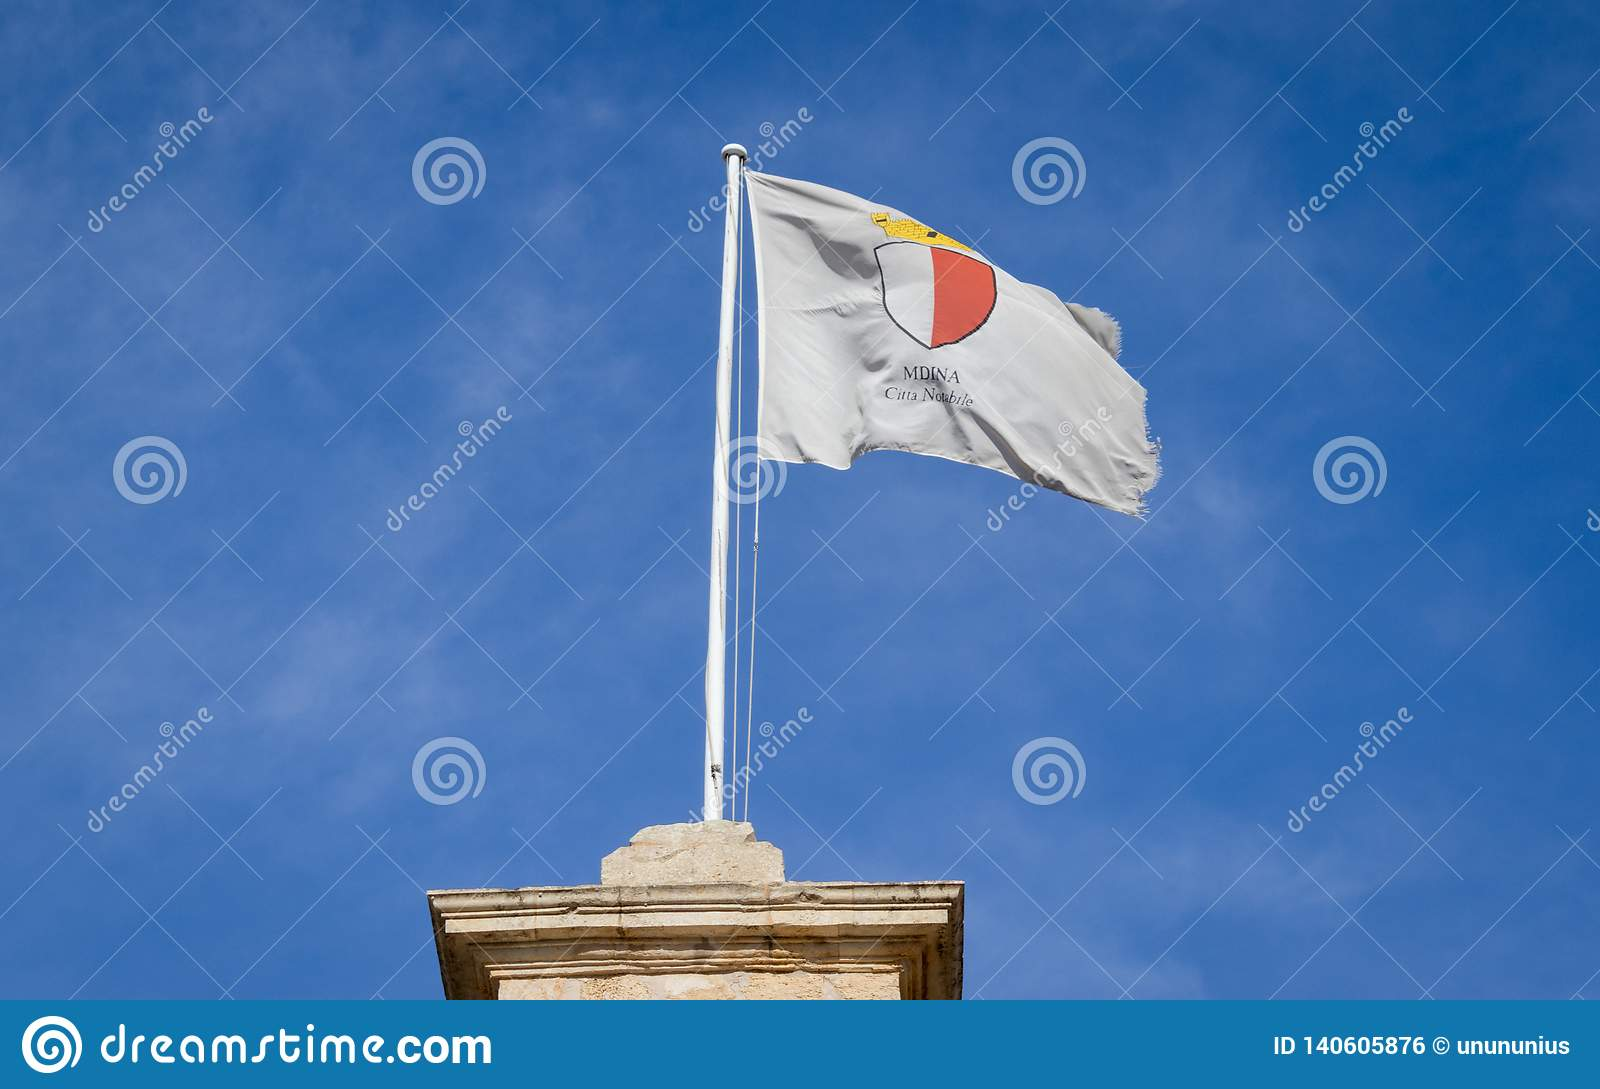 Flag of Mdina City blow in a wind breeze above the Medina Gate in Central Malta on the old historical castle